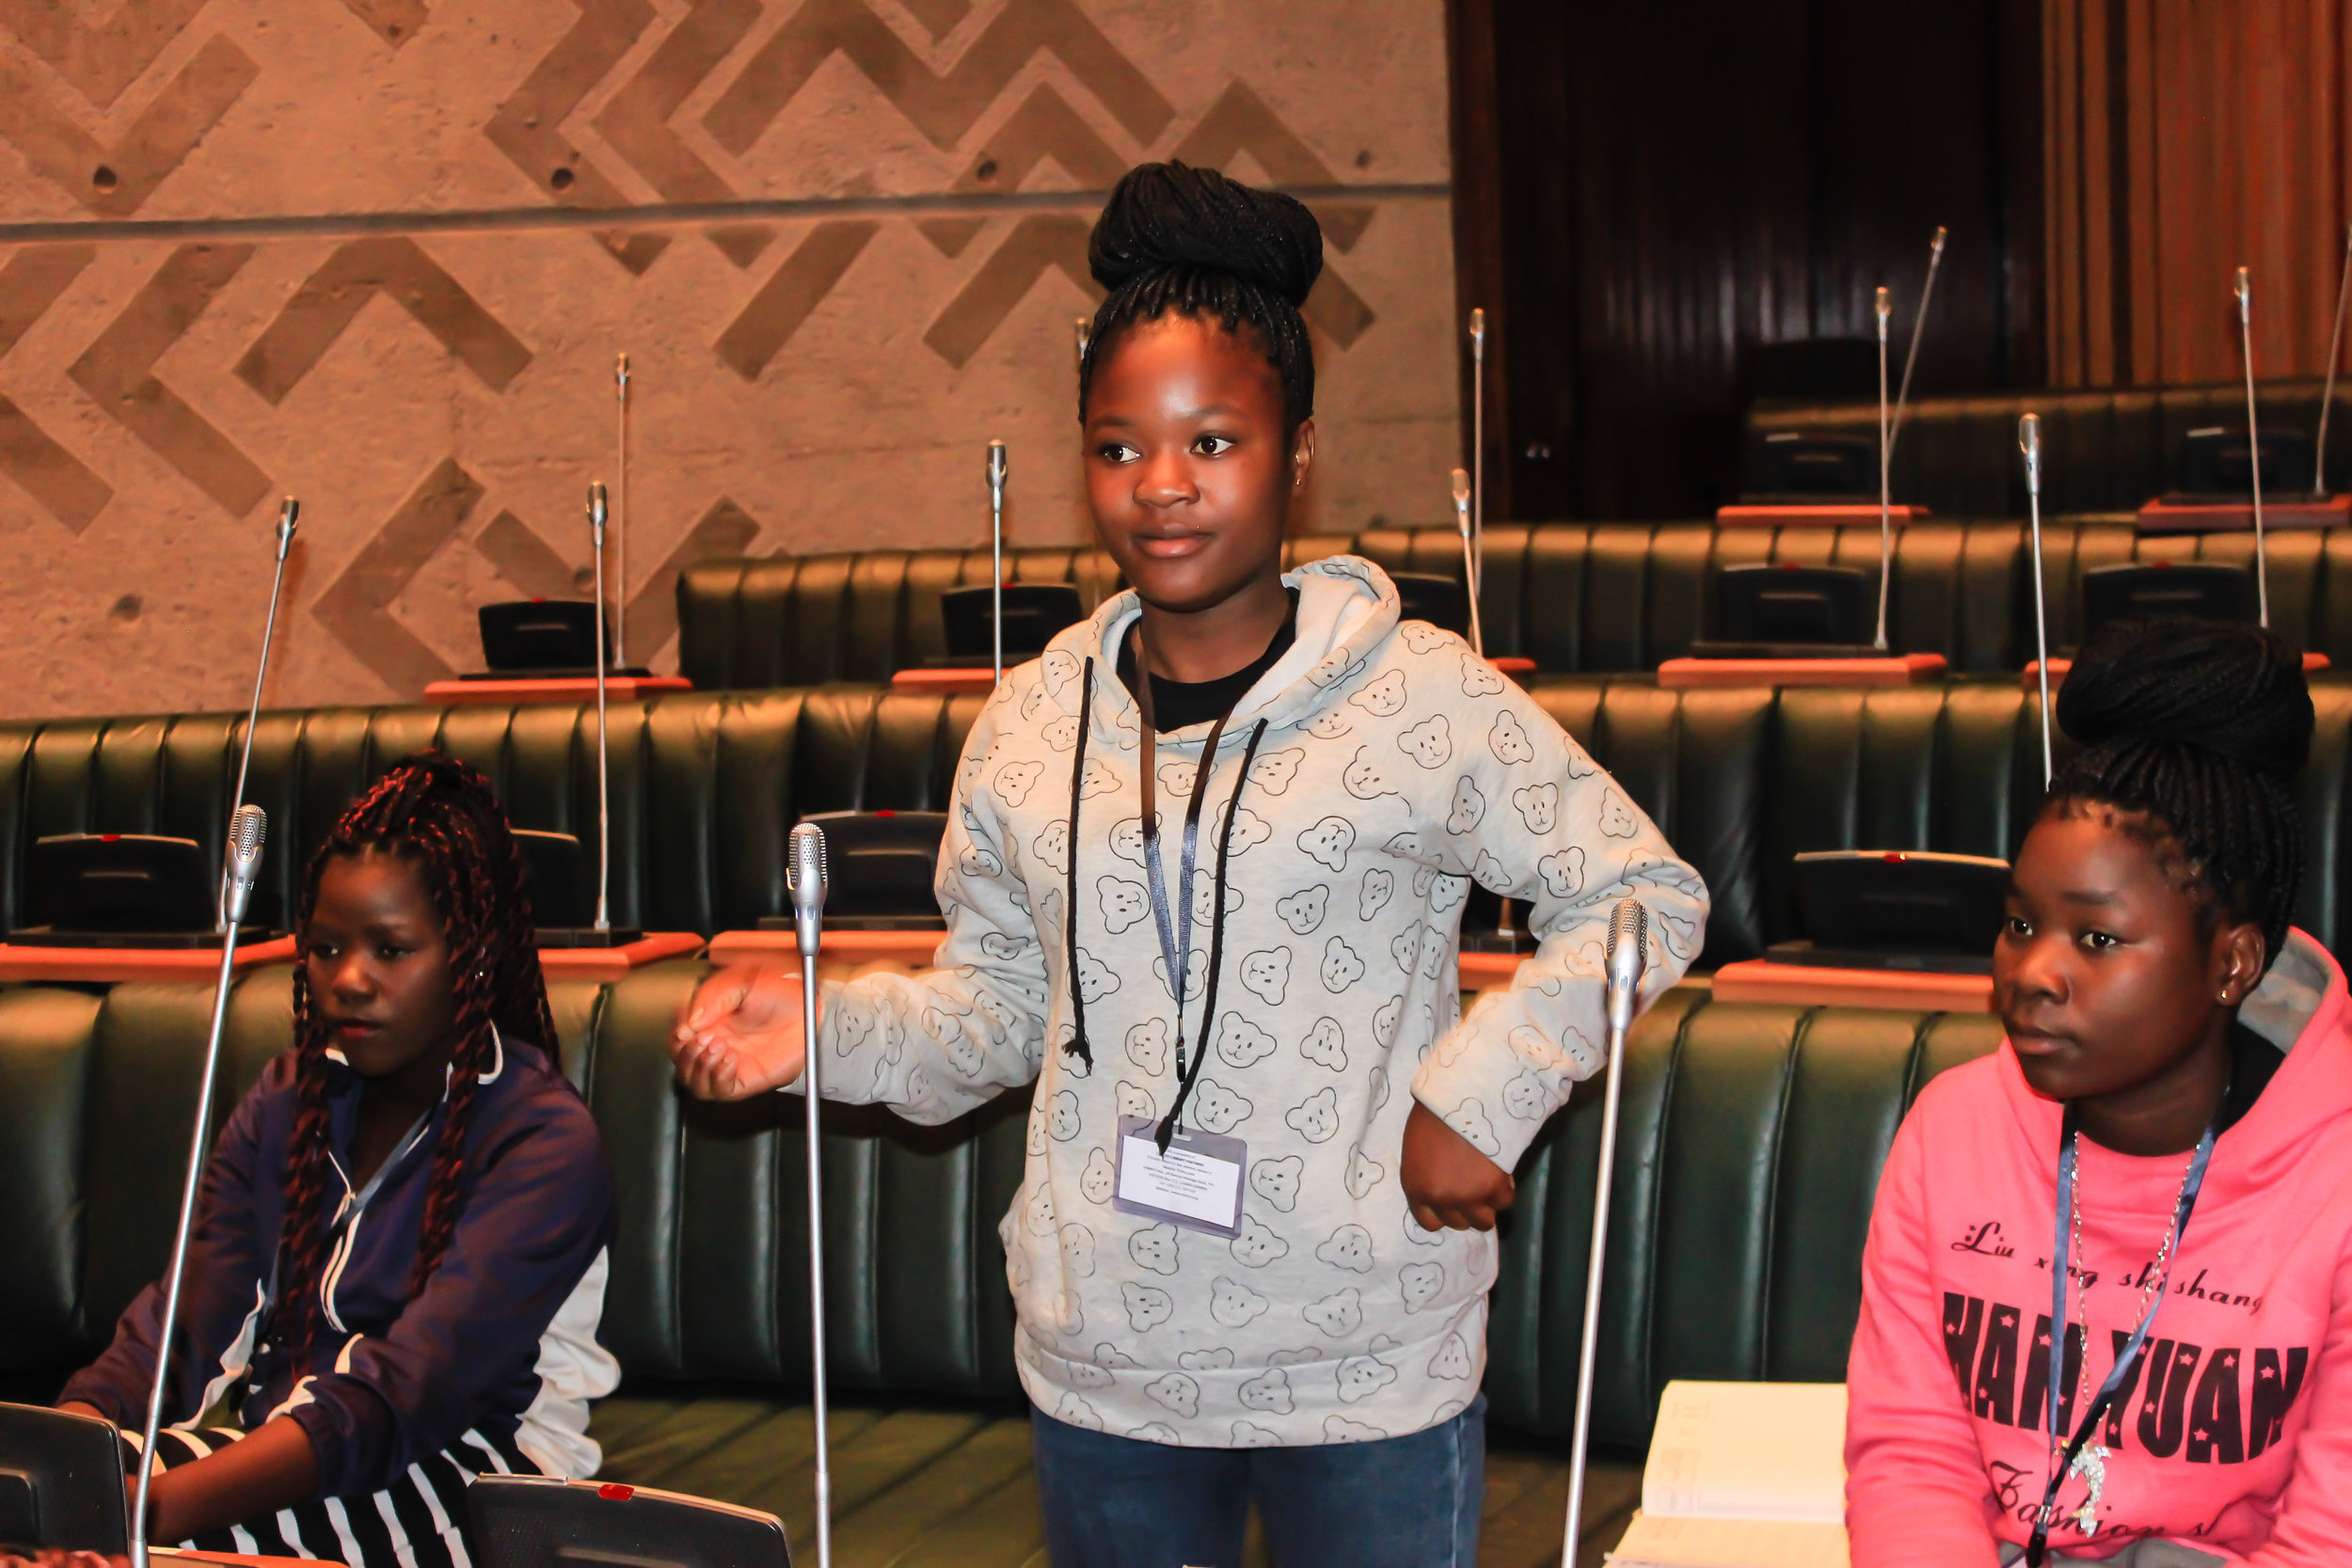 Parliament field trip April 26, 2017